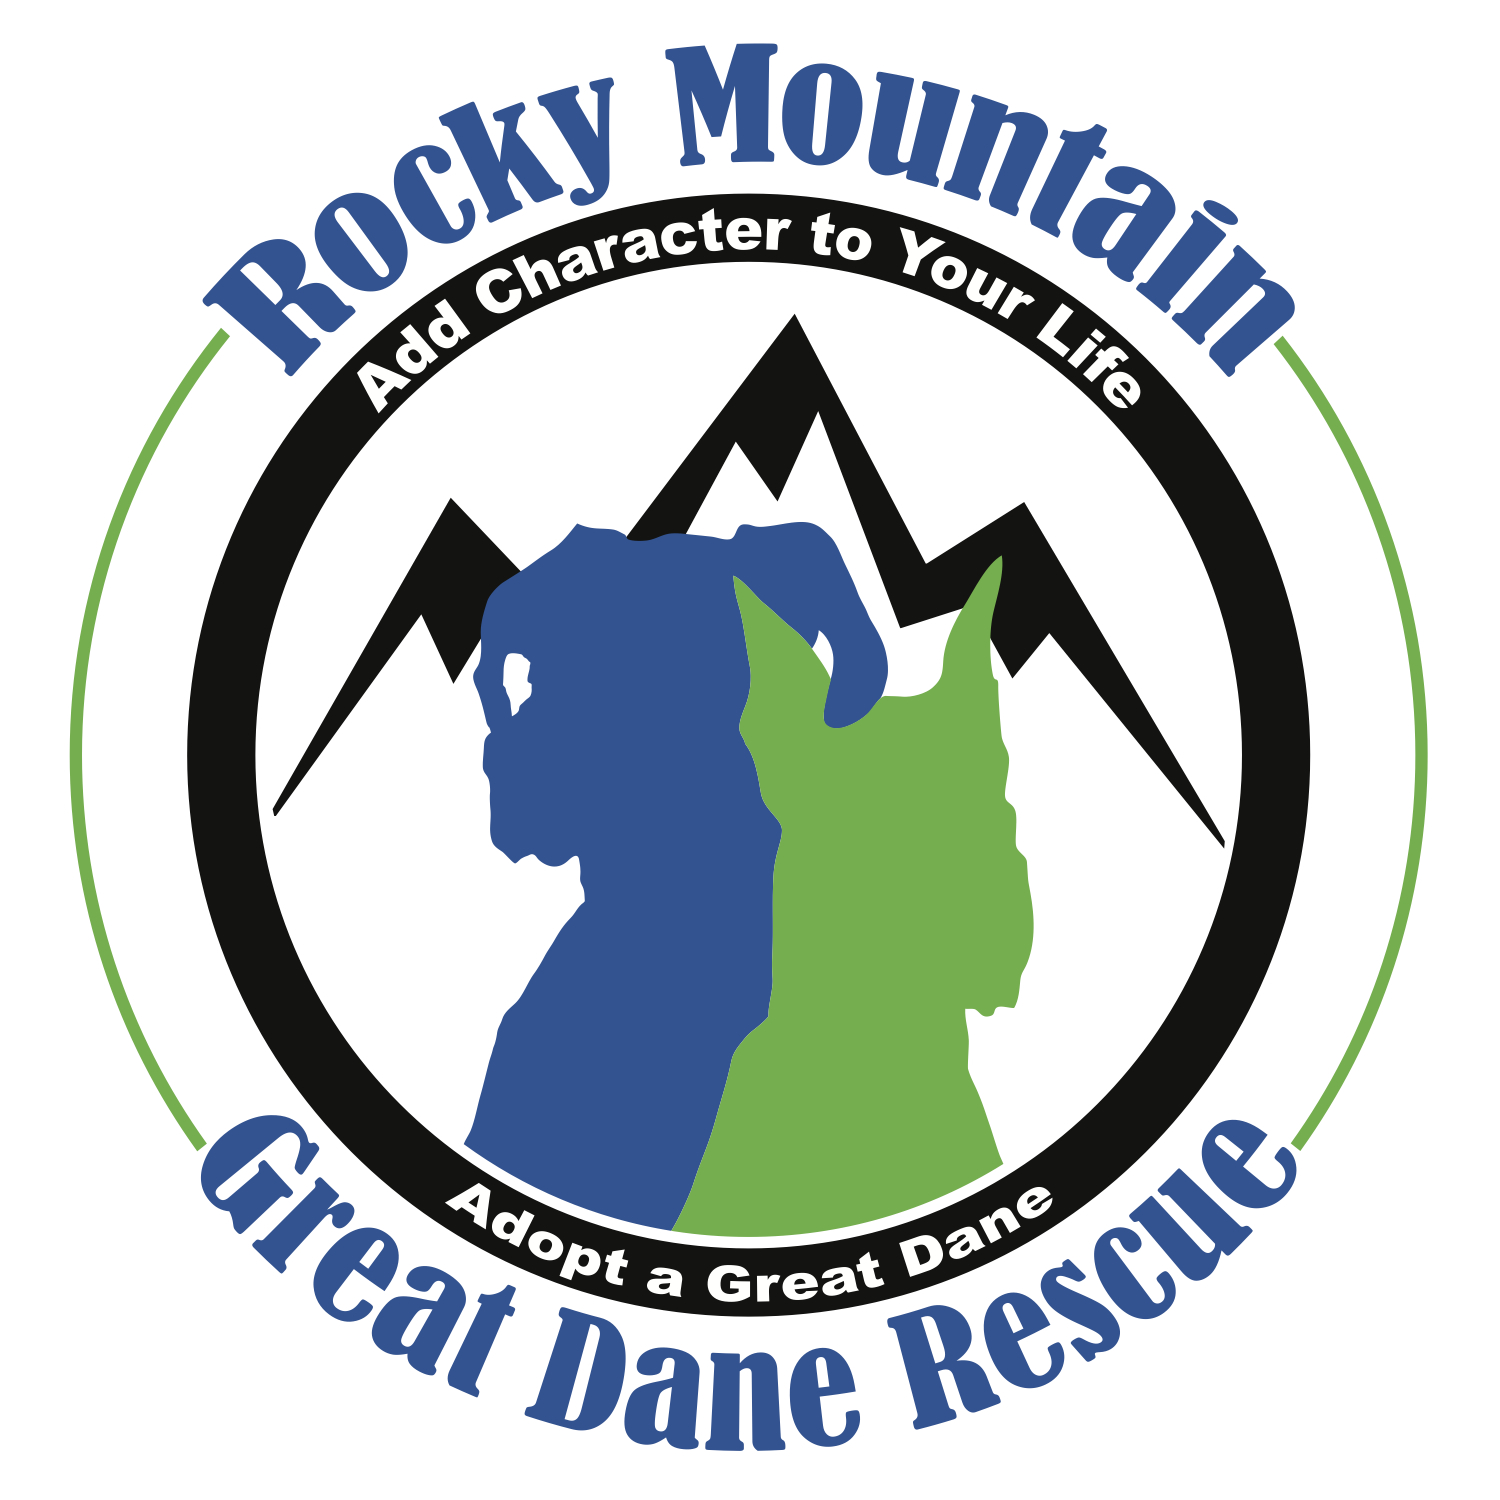 ROCKY MOUNTAIN GREAT DANE RESCUE INC